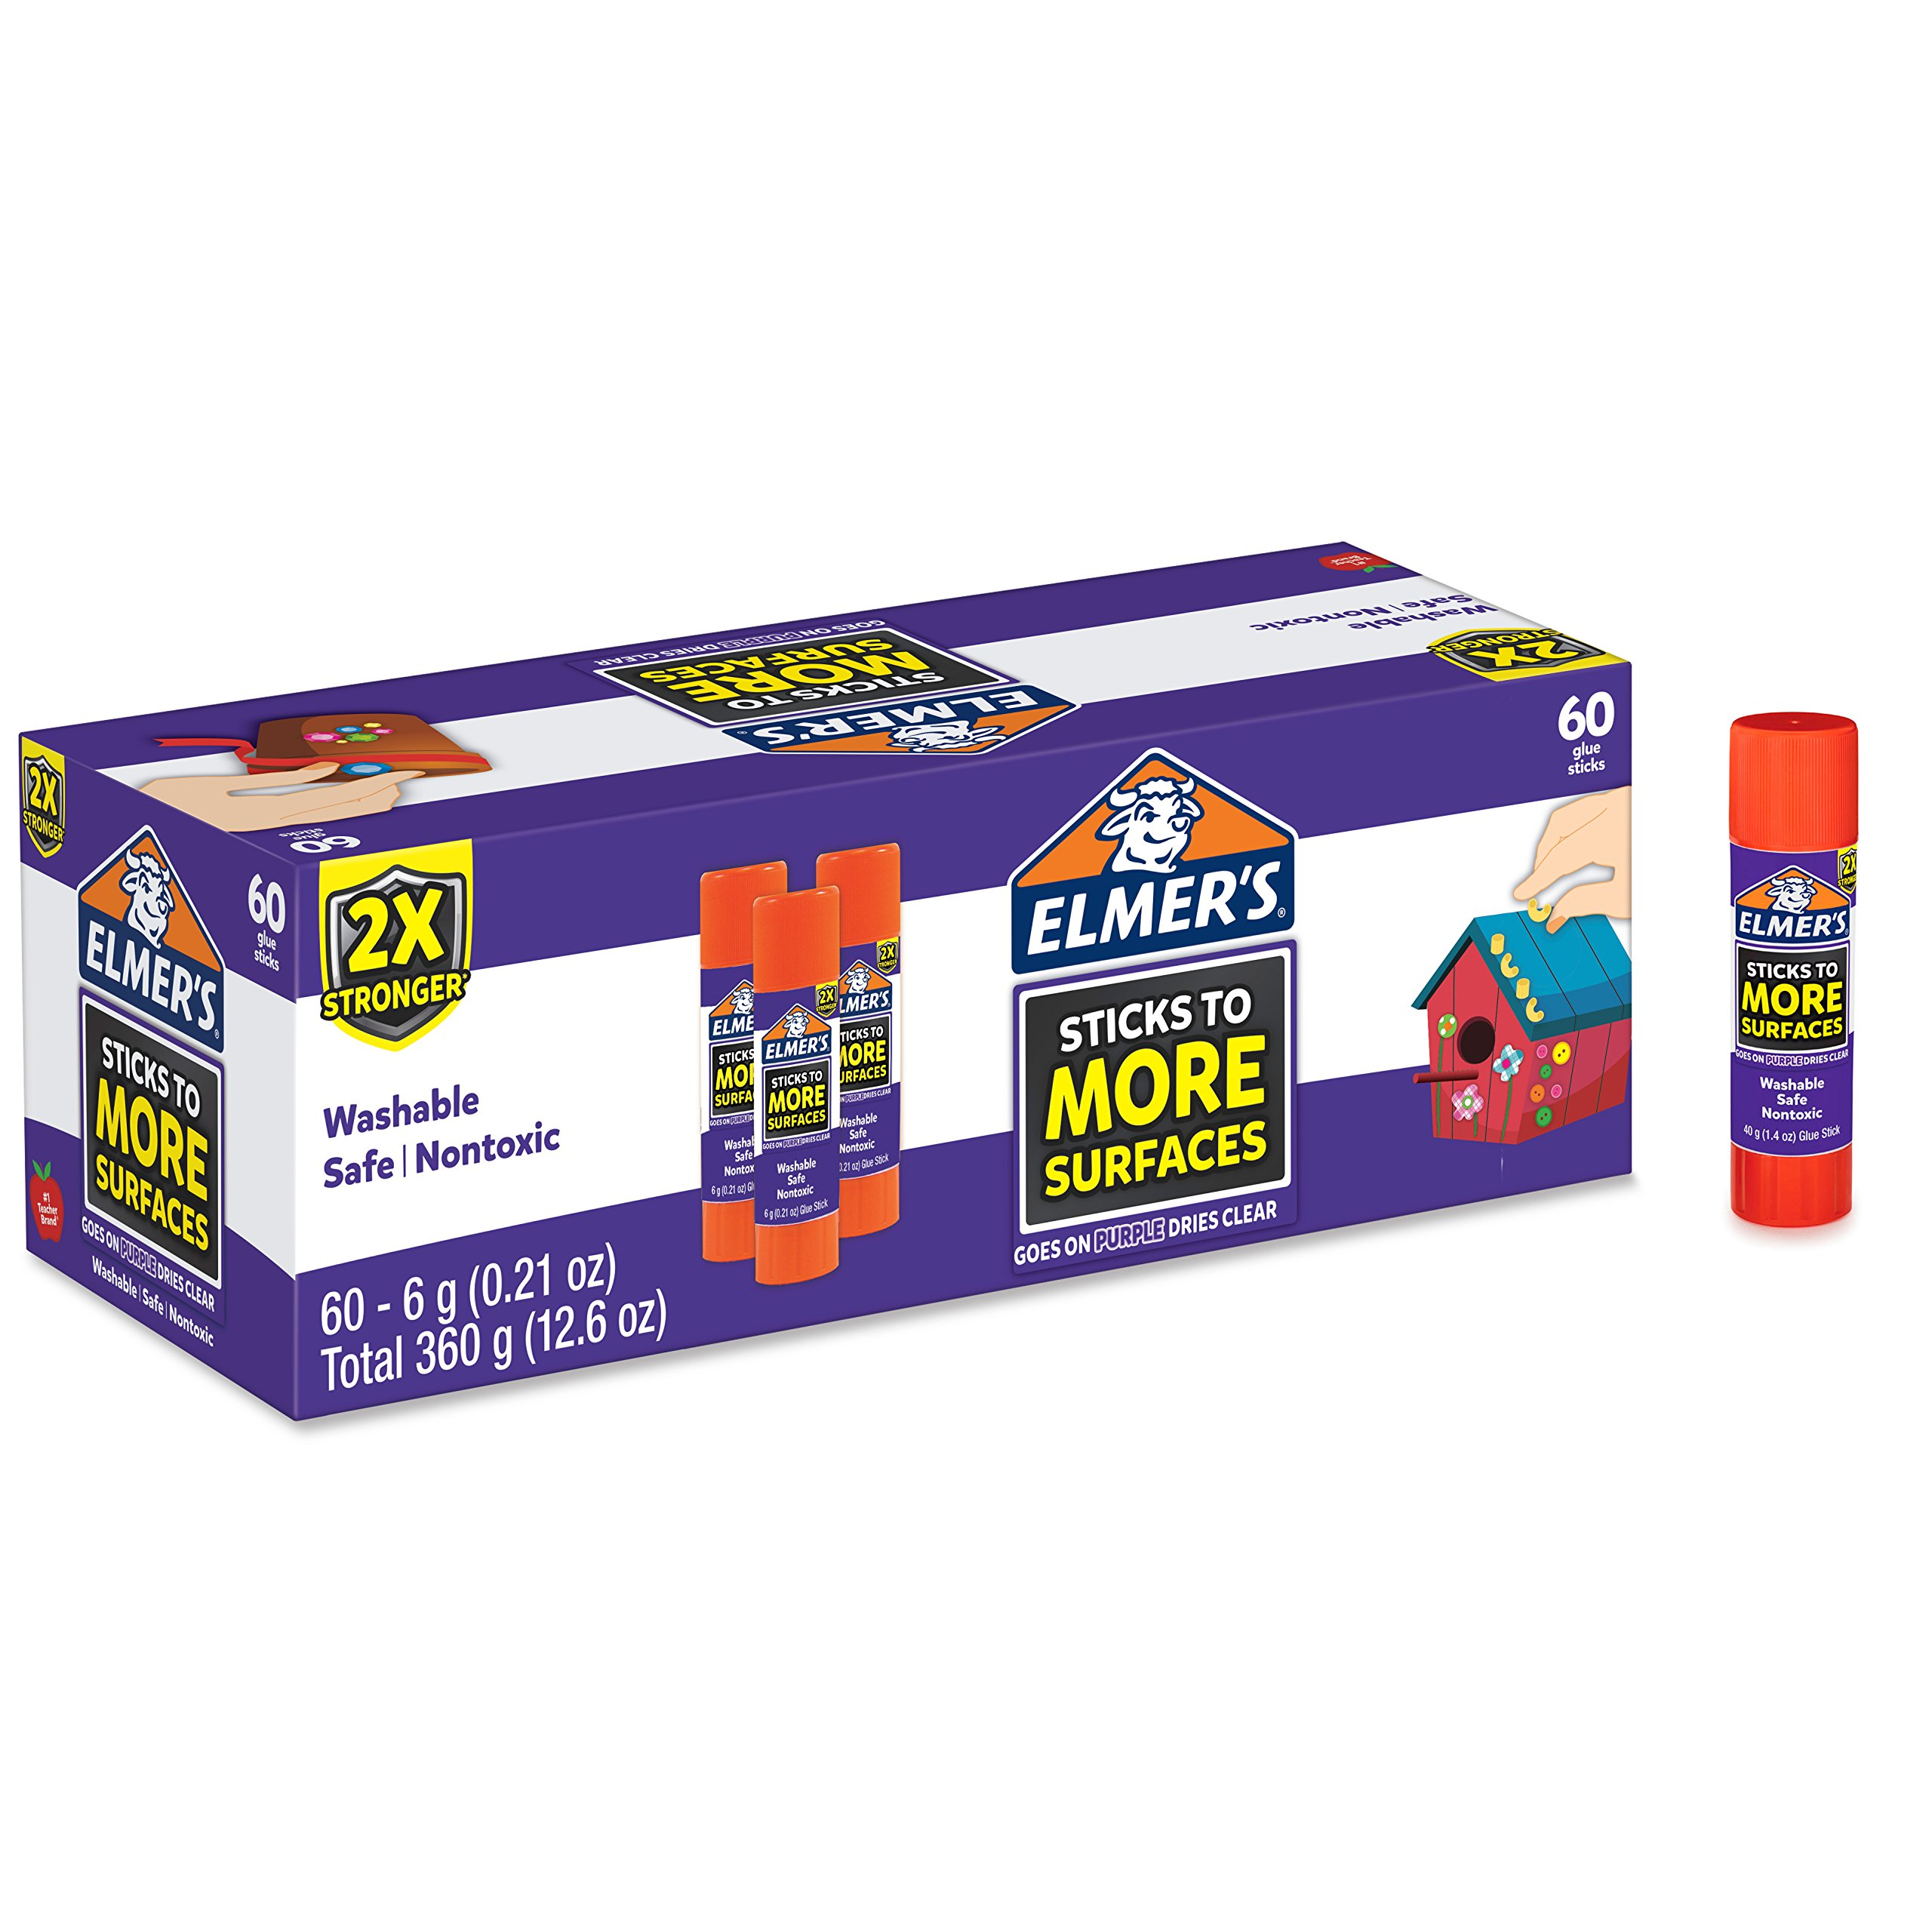 Elmer's Extra Strength School Glue Sticks, Washable, 6 Gram, 60 Count